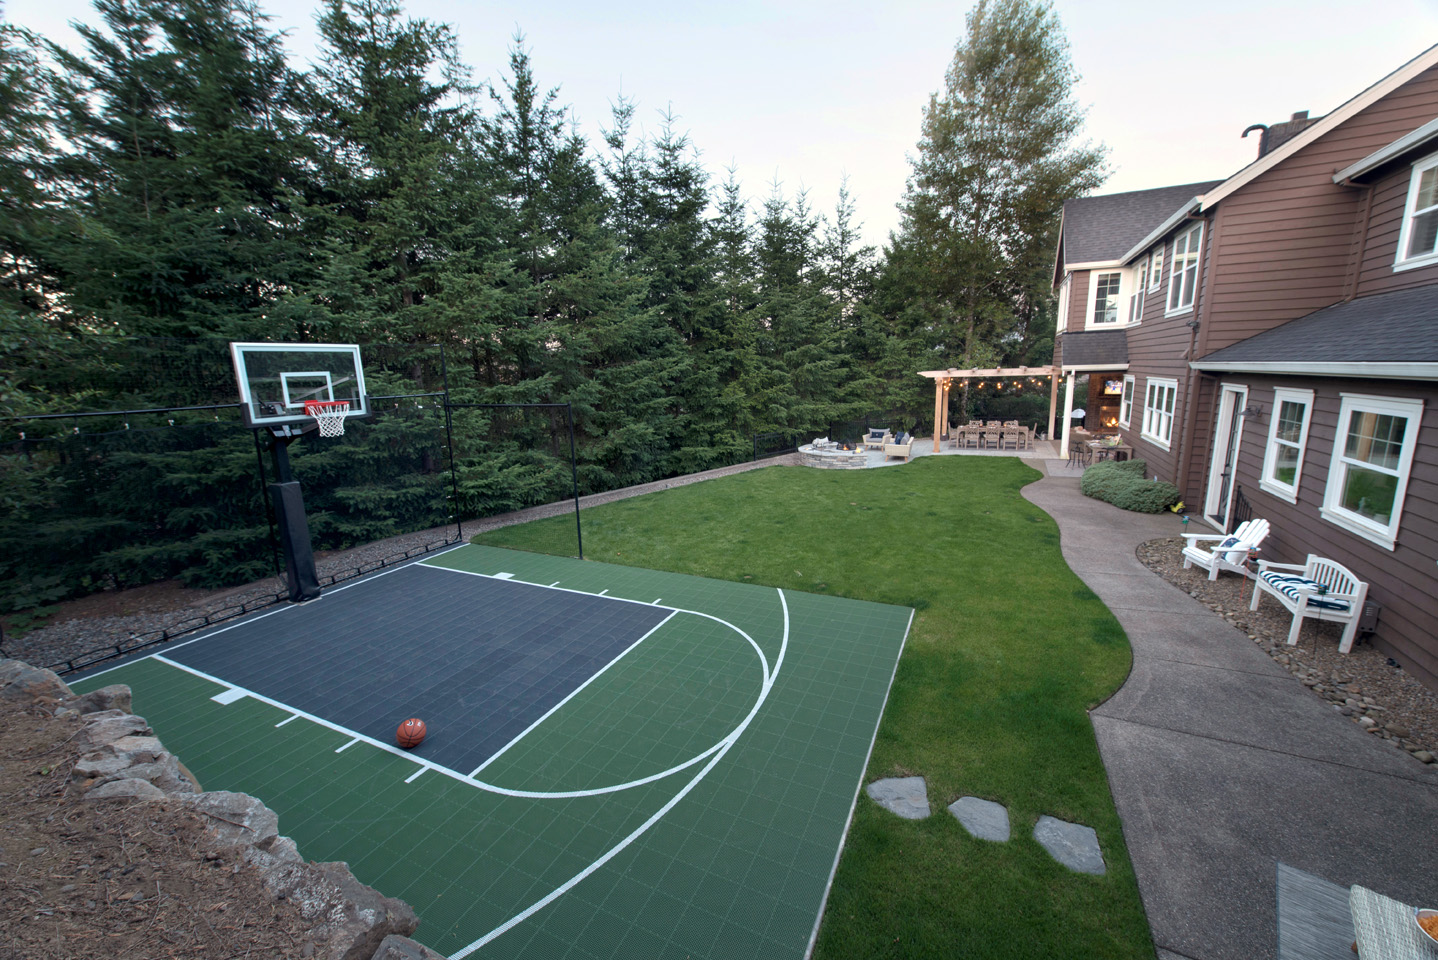 5 Reasons To Add A Basketball Court To Your Backyard Residence Style